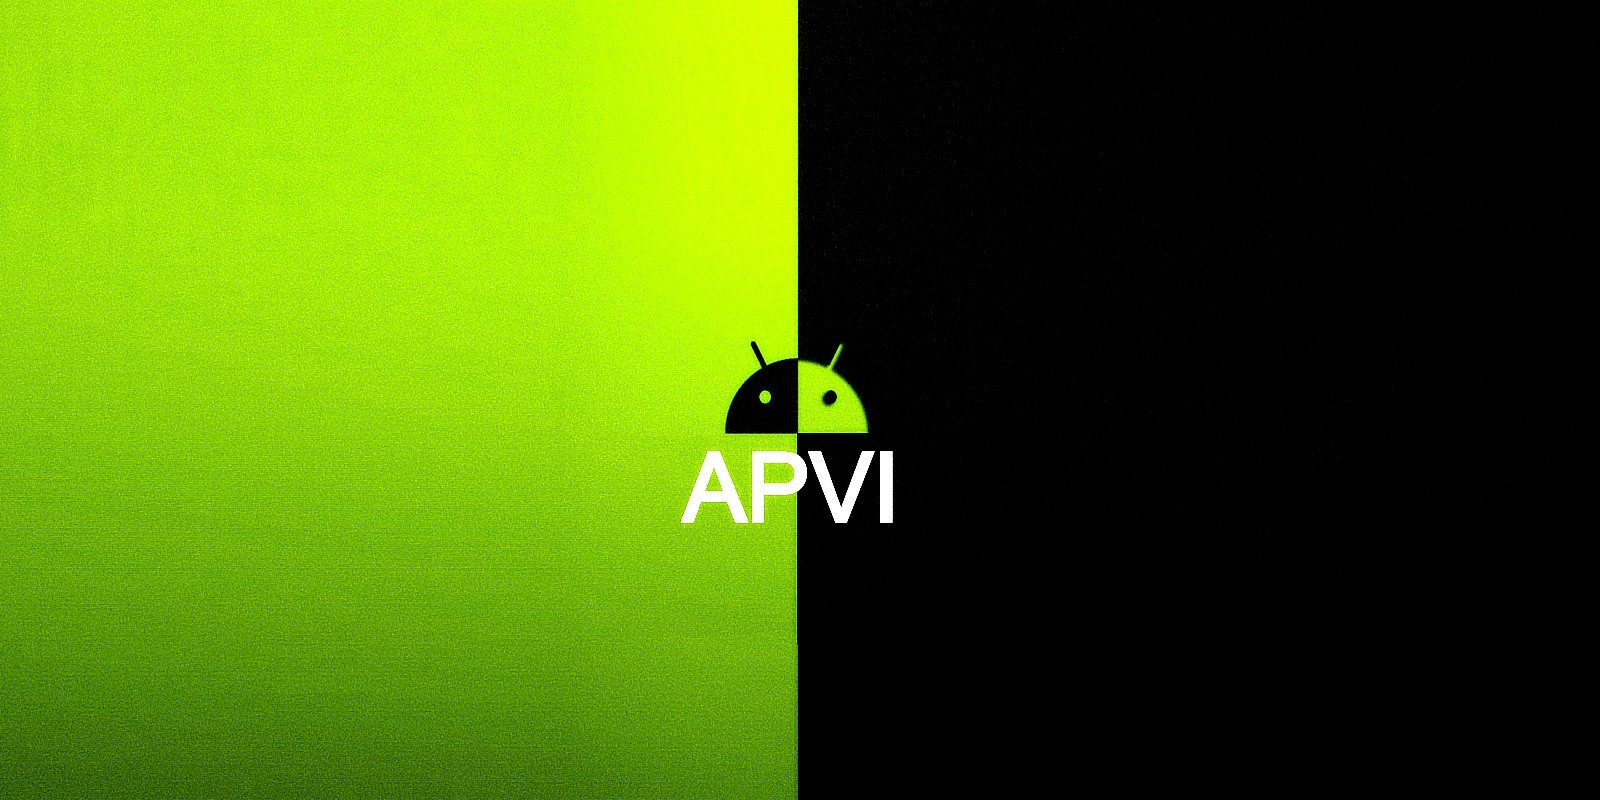 Google now discloses Android vulnerabilities for 3rd-party devices